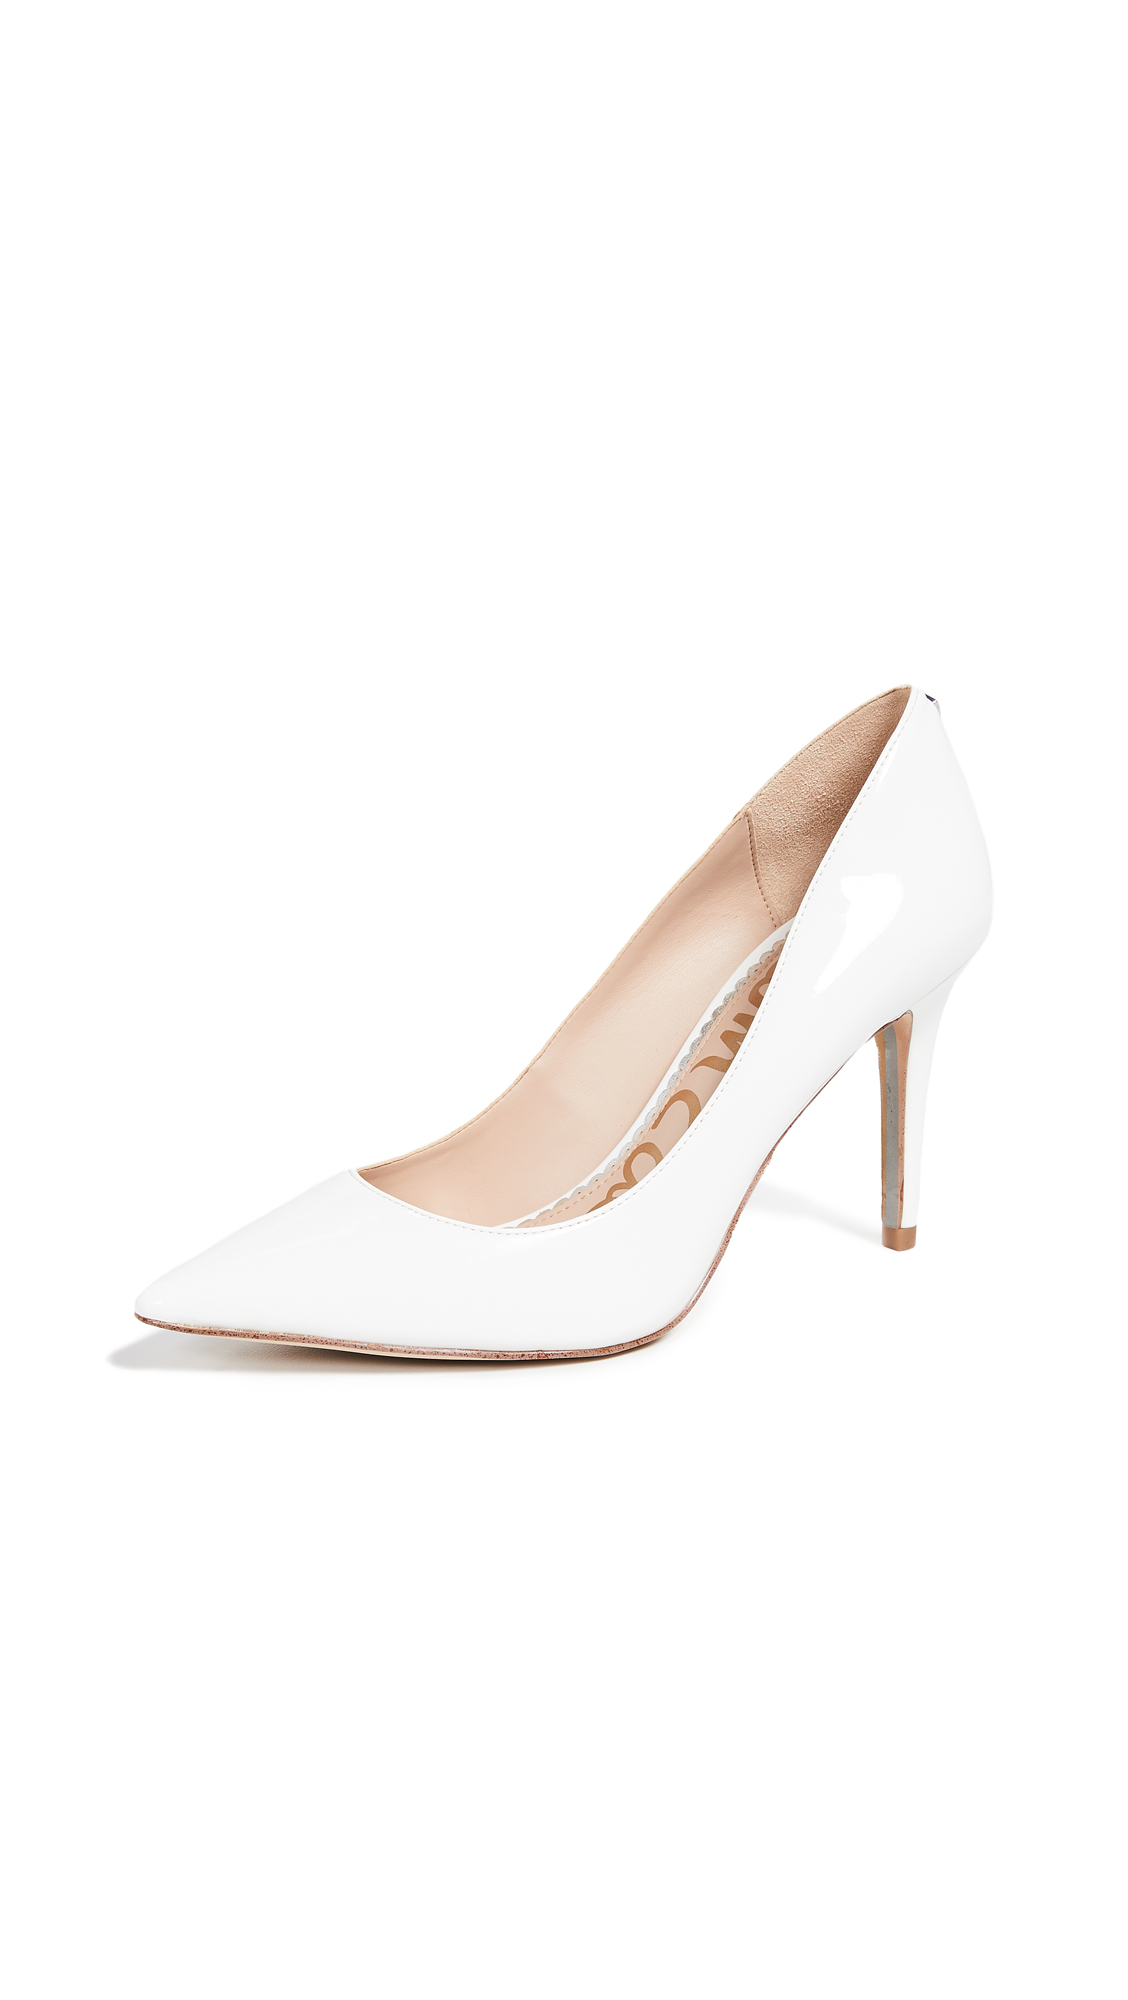 Sam Edelman Margie Pumps - Bright White